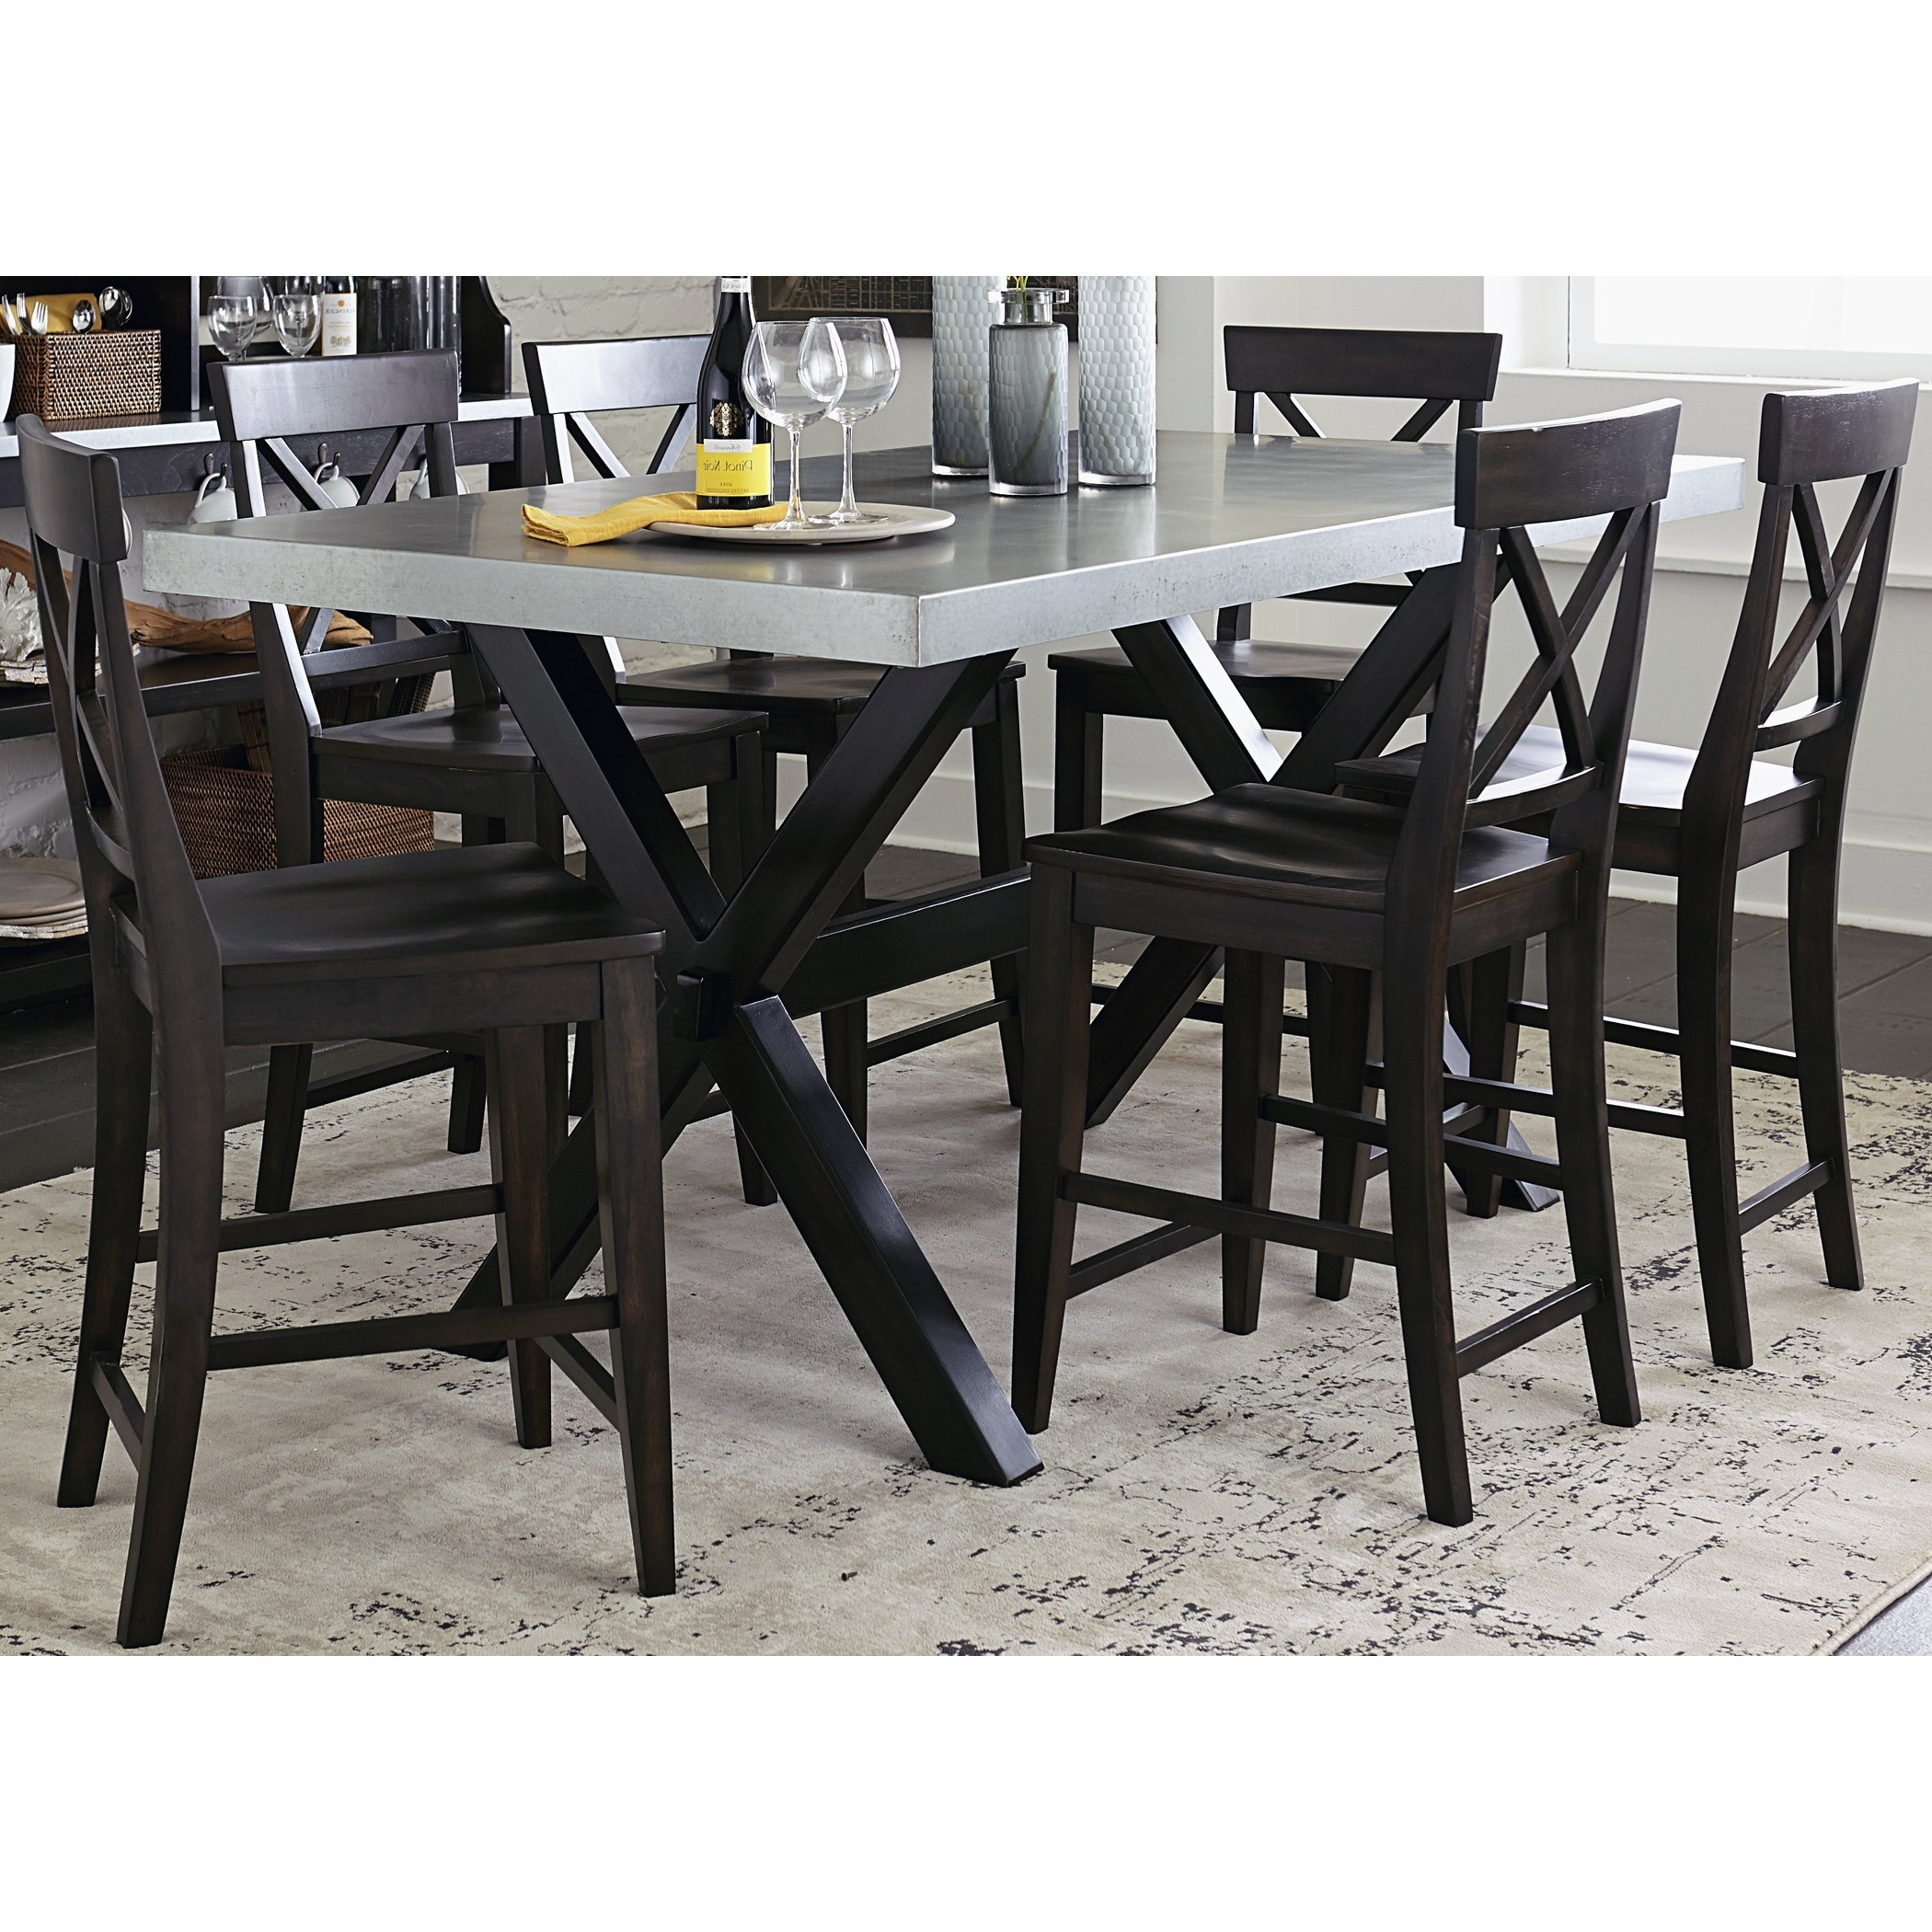 Pinot Side Chairs In Popular Shop Keaton Charcoal And Zinc Top Trestle Gathering Table – Espresso (View 11 of 20)